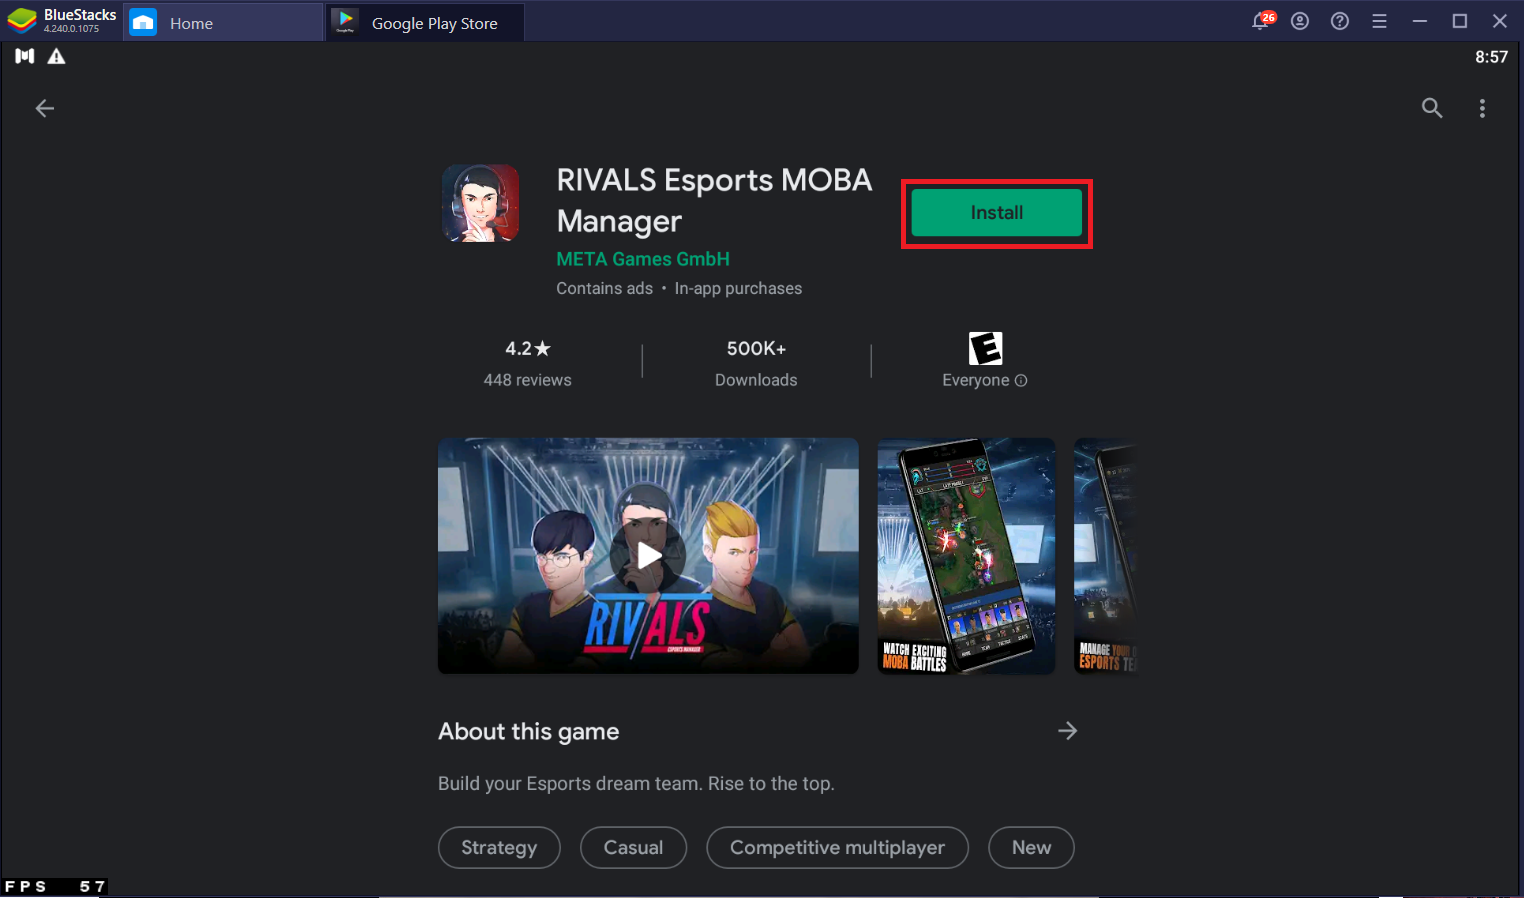 Be an Esports Manager – How to Play Rivals Esports MOBA Manager on PC with BlueStacks